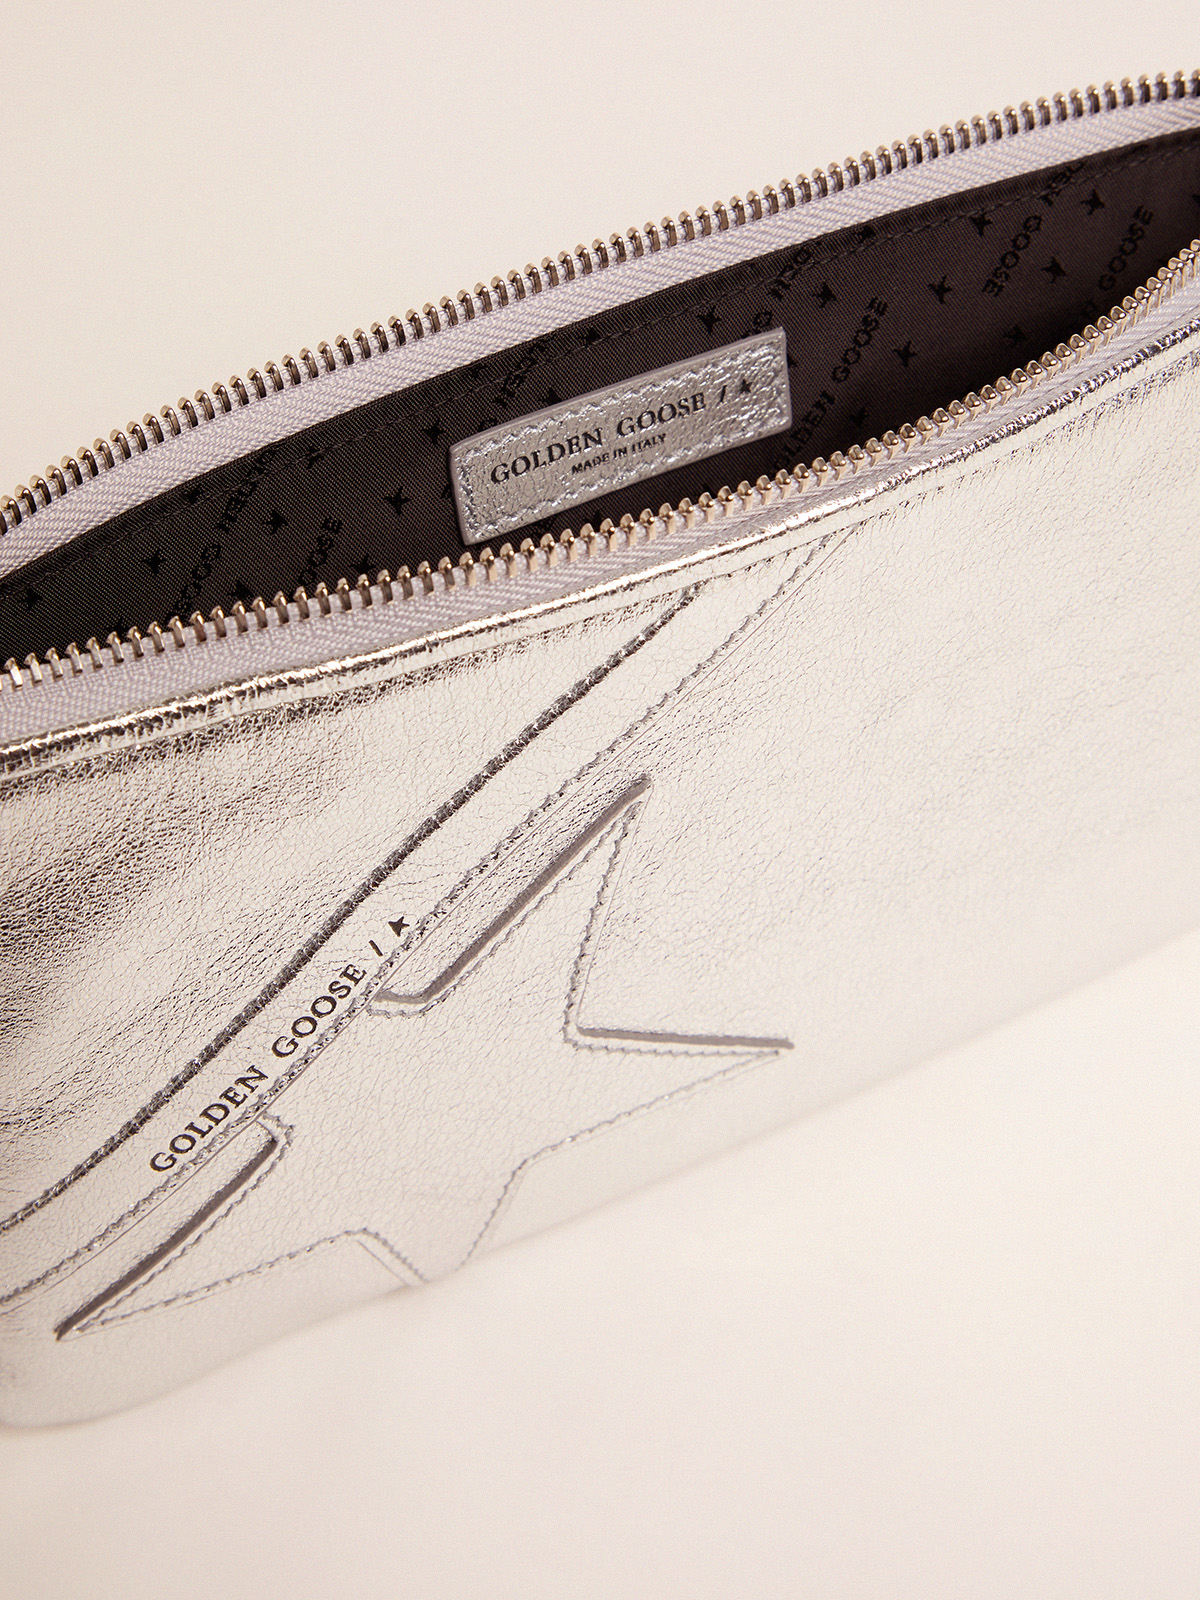 Golden Goose - Silver Star Wrist clutch bag   in